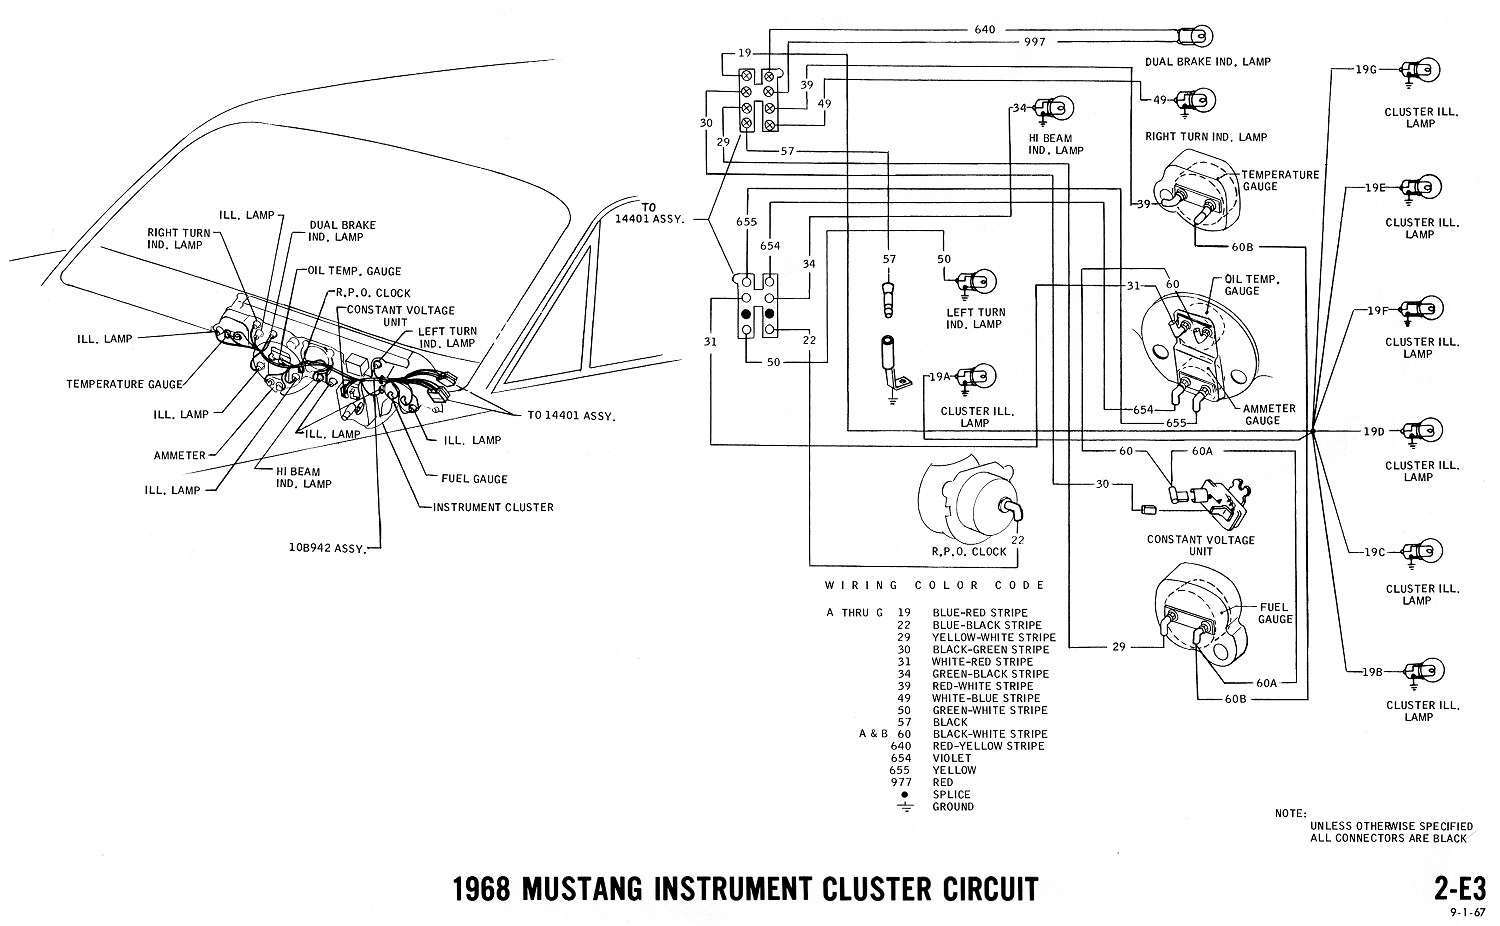 beautiful 70 mustang wiring diagram inspiration electrical circuit rh suaiphone org Mustang Alternator Wiring Diagram 70 Ford Mustang Electrical Diagram